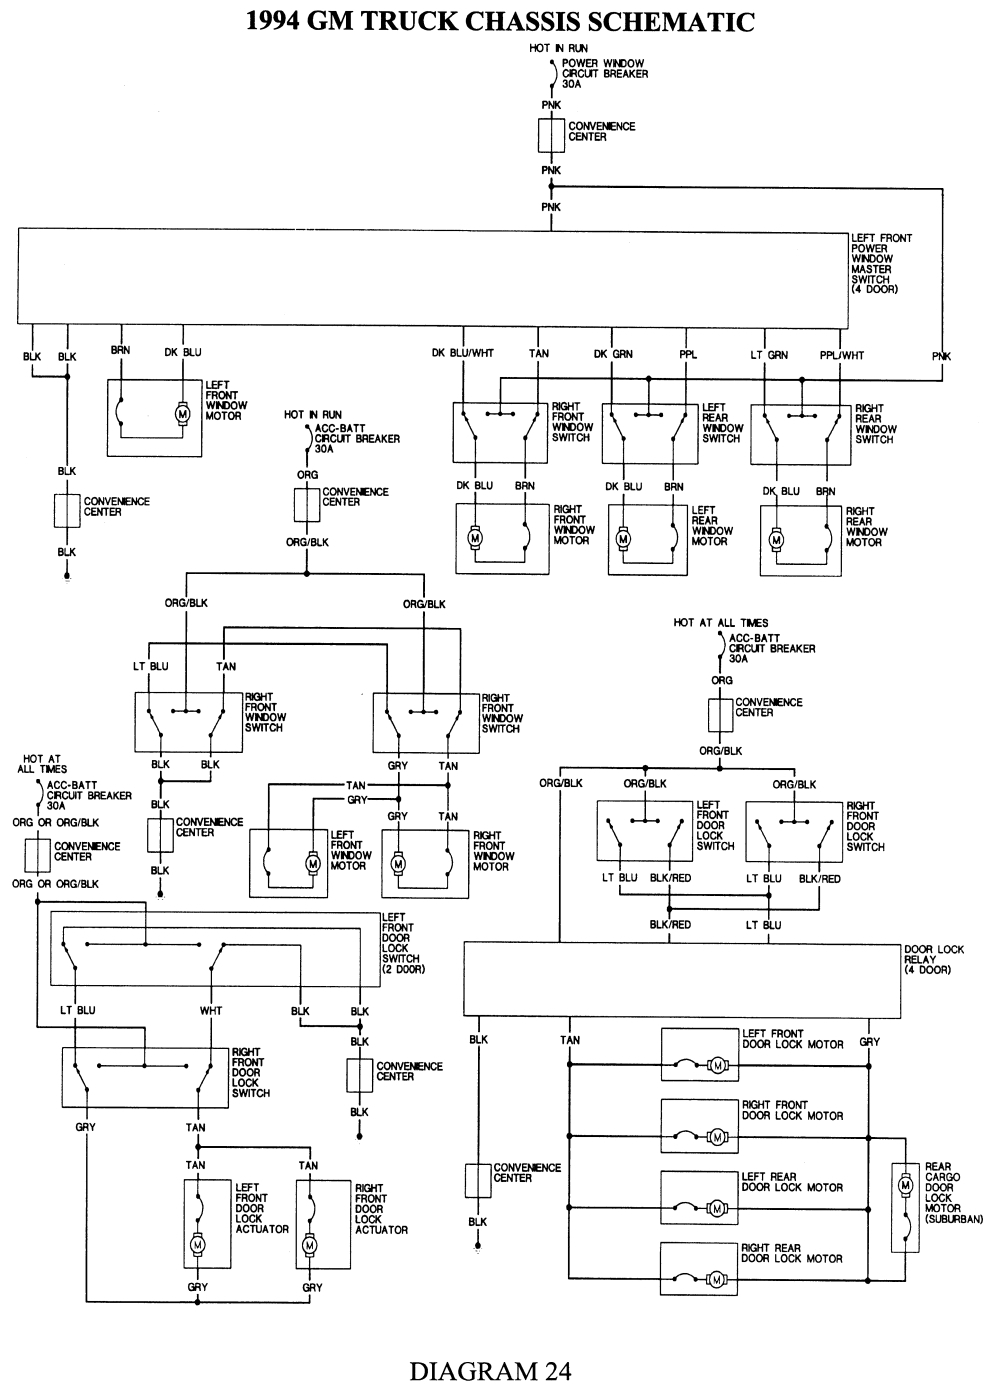 chevrolet s10 wiring diagram Collection-chevrolet s10 wiring diagram Collection Fig 3 j 6-l